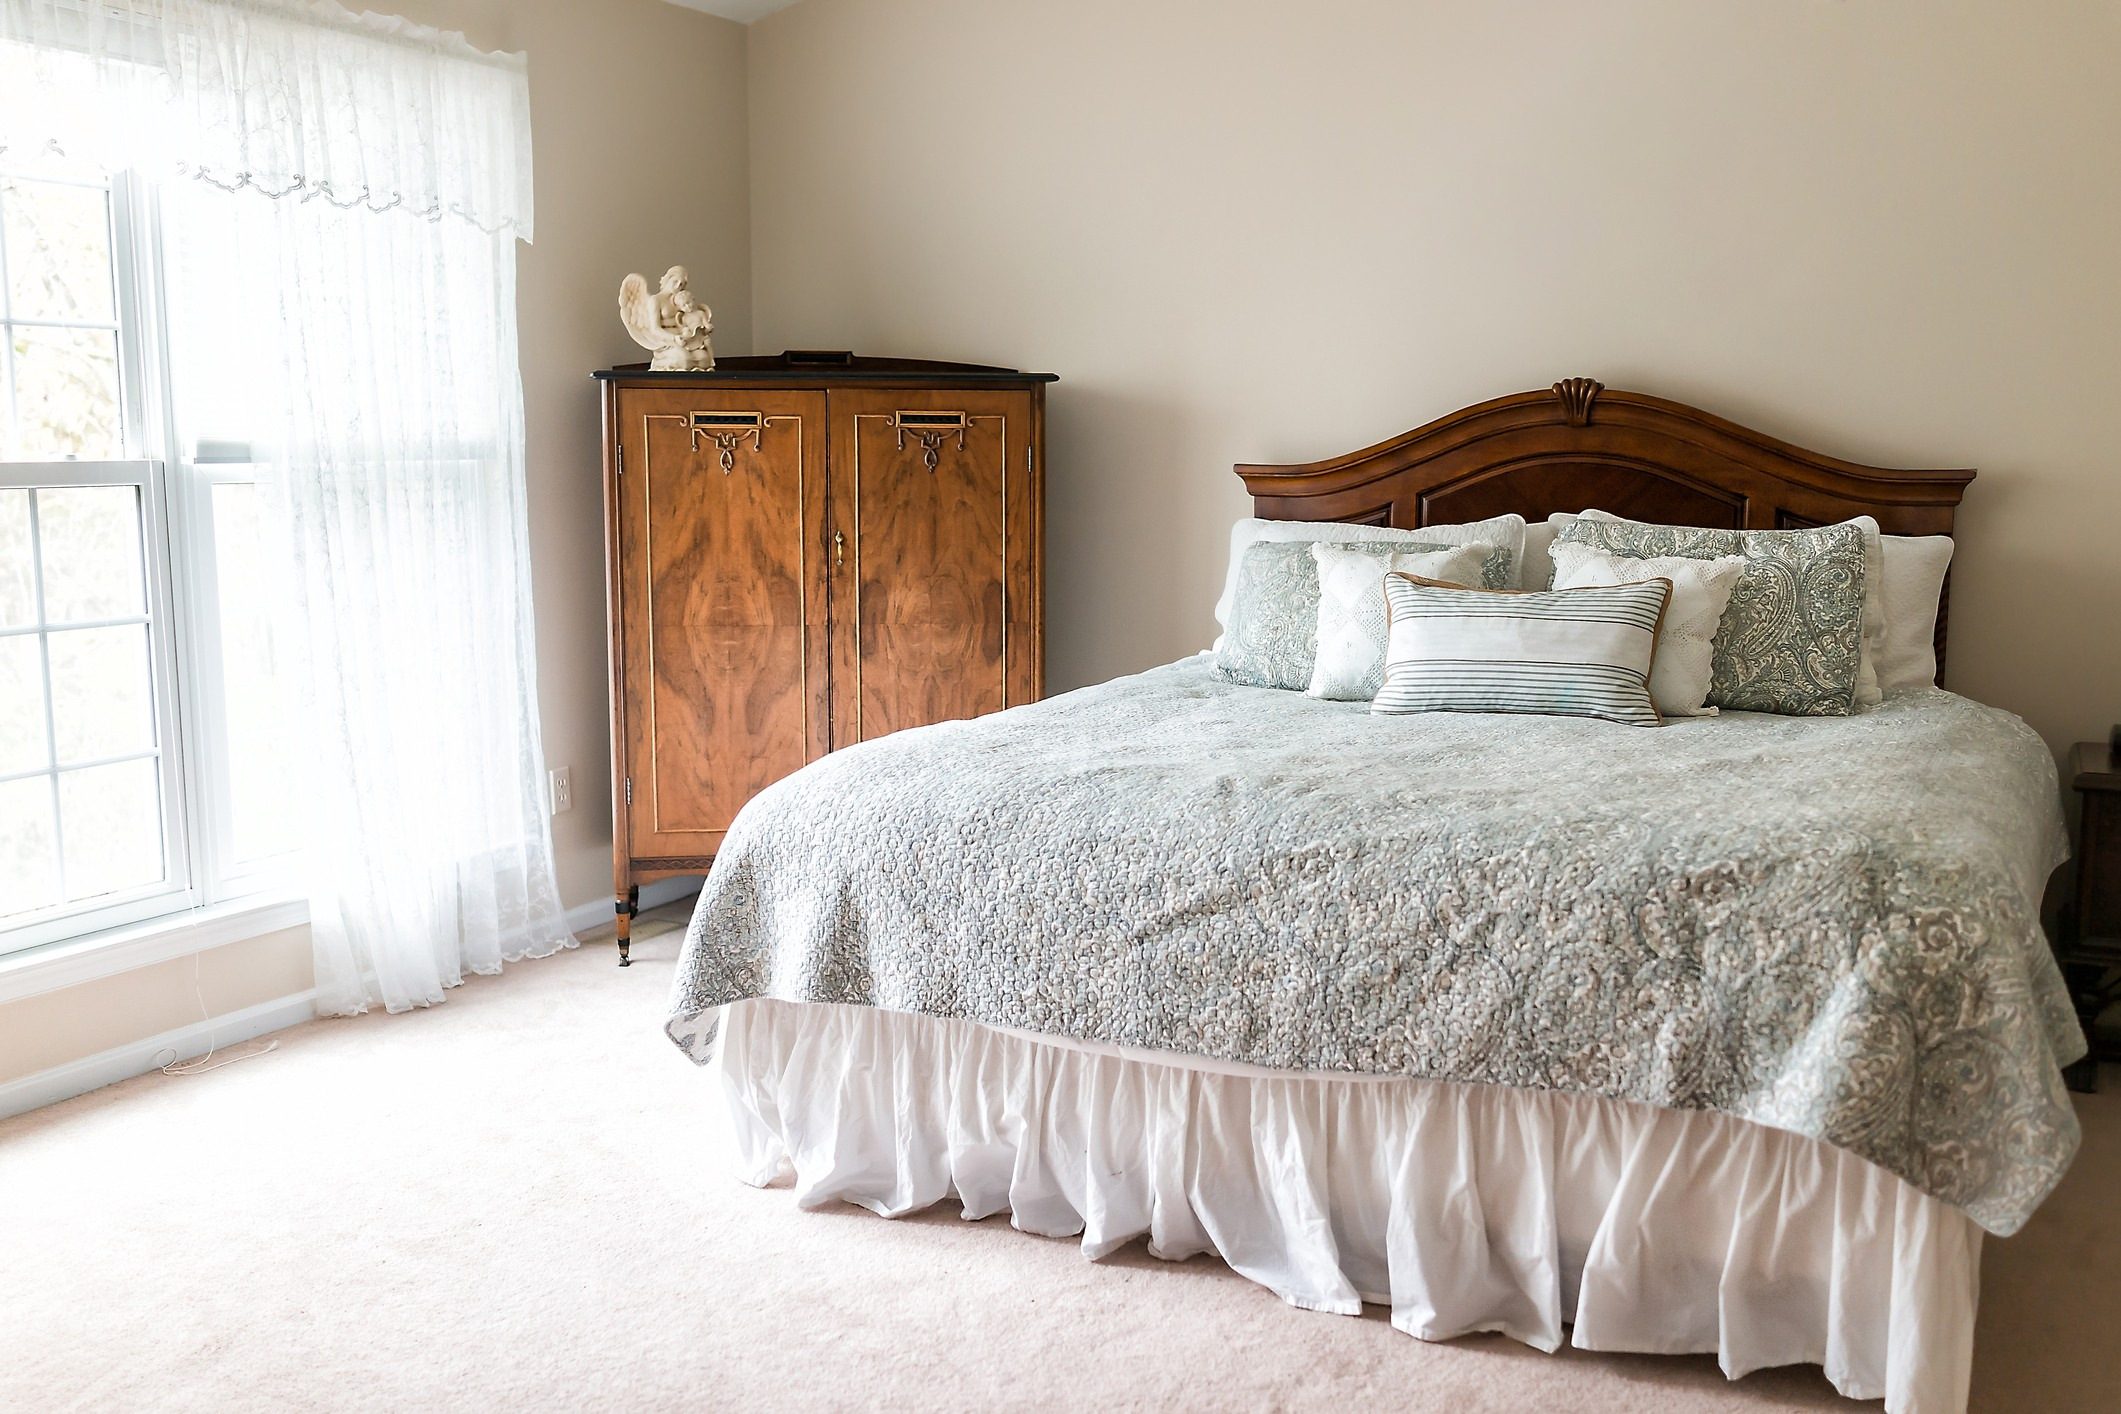 Dated bedroom with ruffle bed skirt